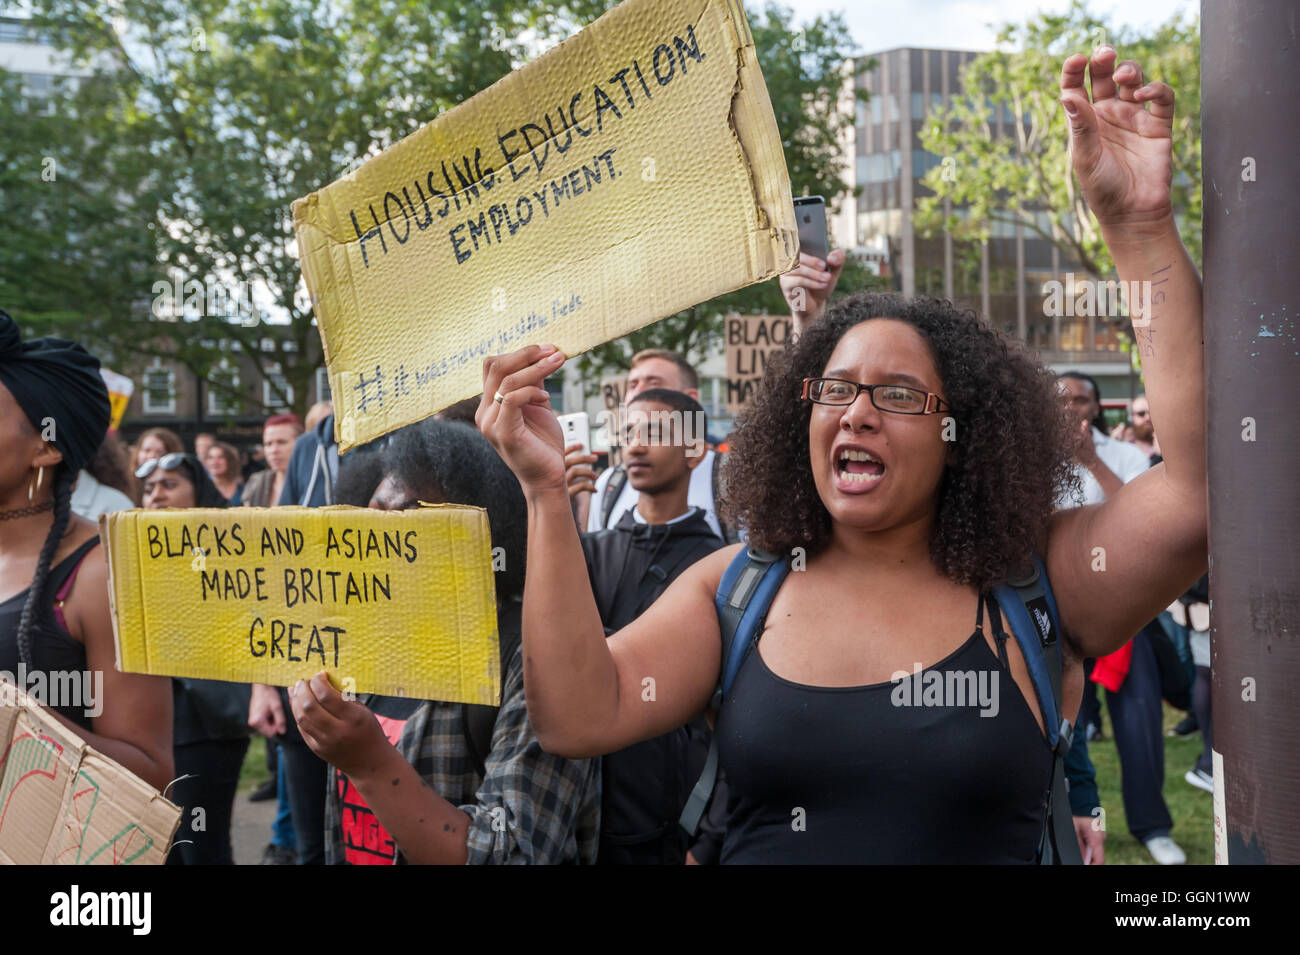 London, UK. 5th Aug, 2016. A woman holds a poster'Housing, Education, Employment' at the rally five years - Stock Image